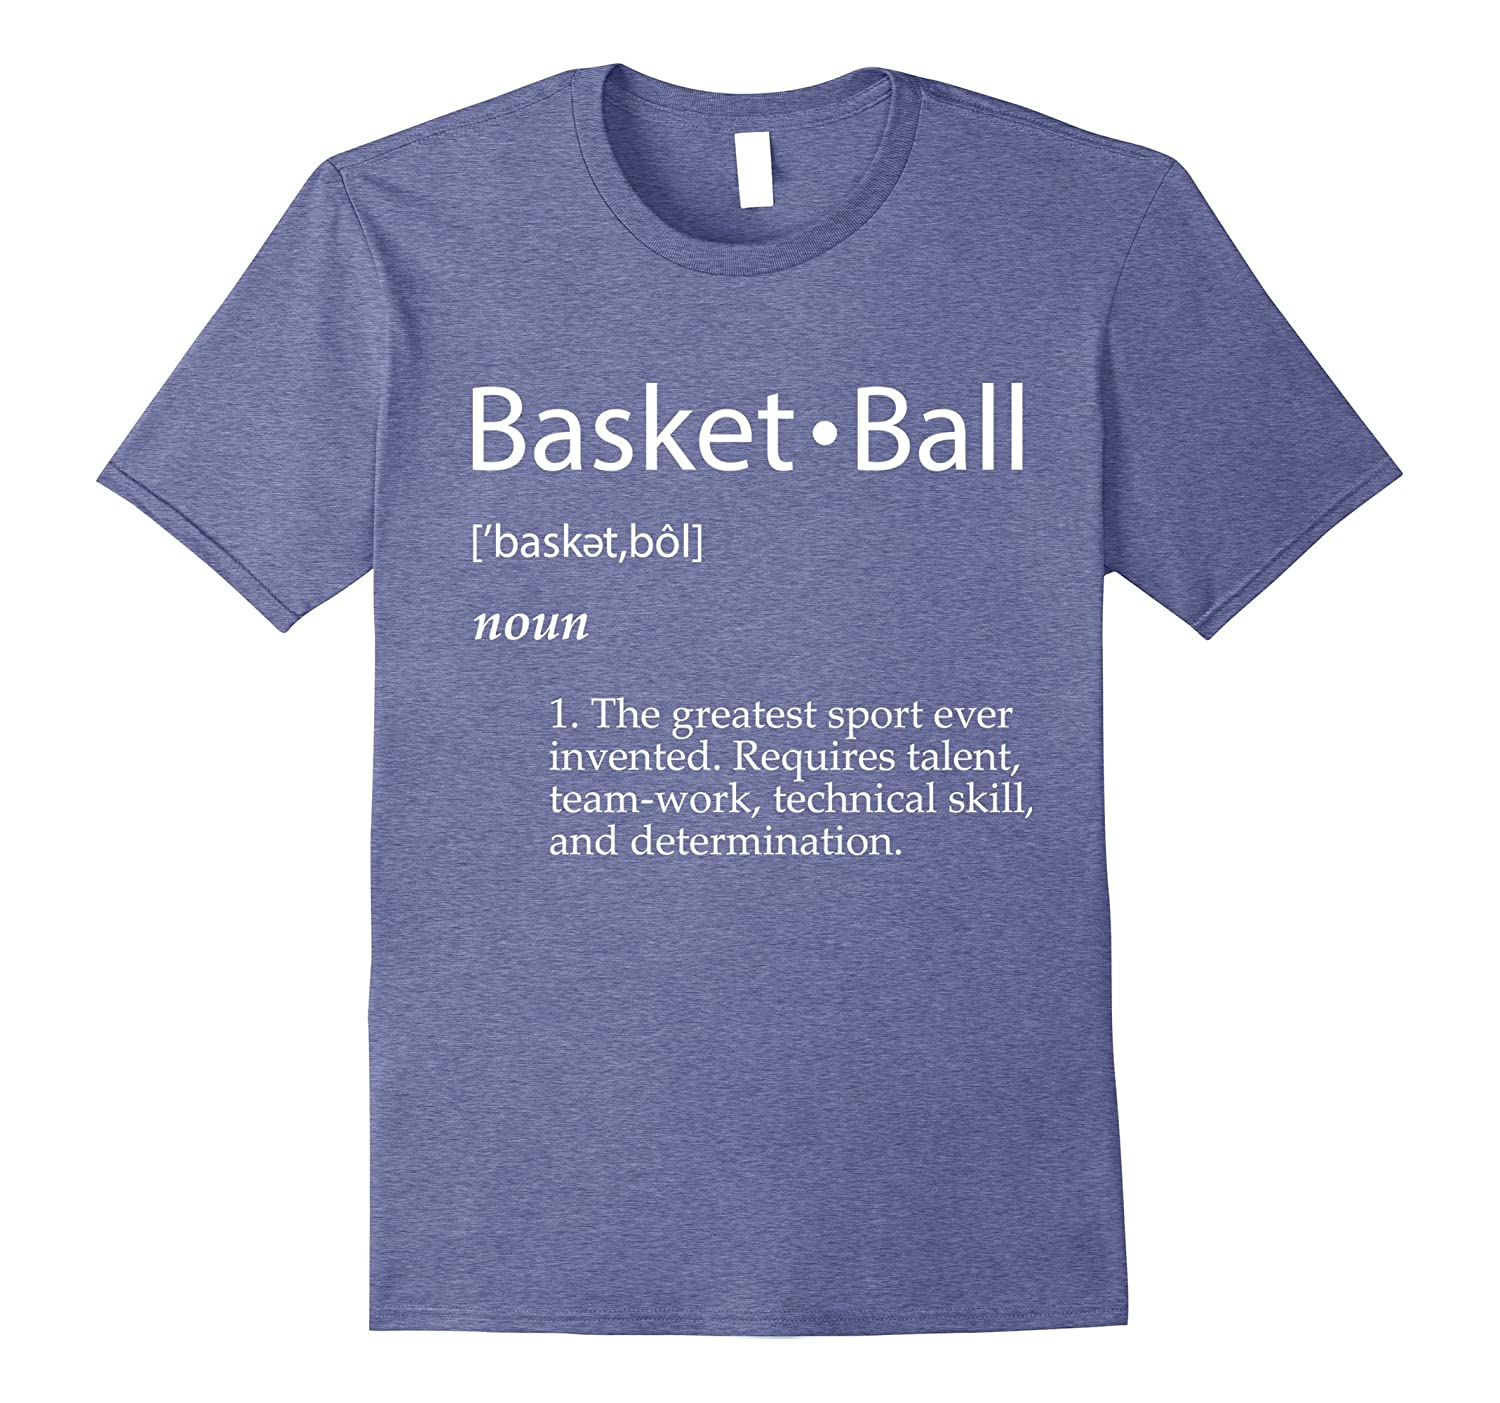 Basketball Definition T-Shirt - Men Women Youth Sizes Colors-TH